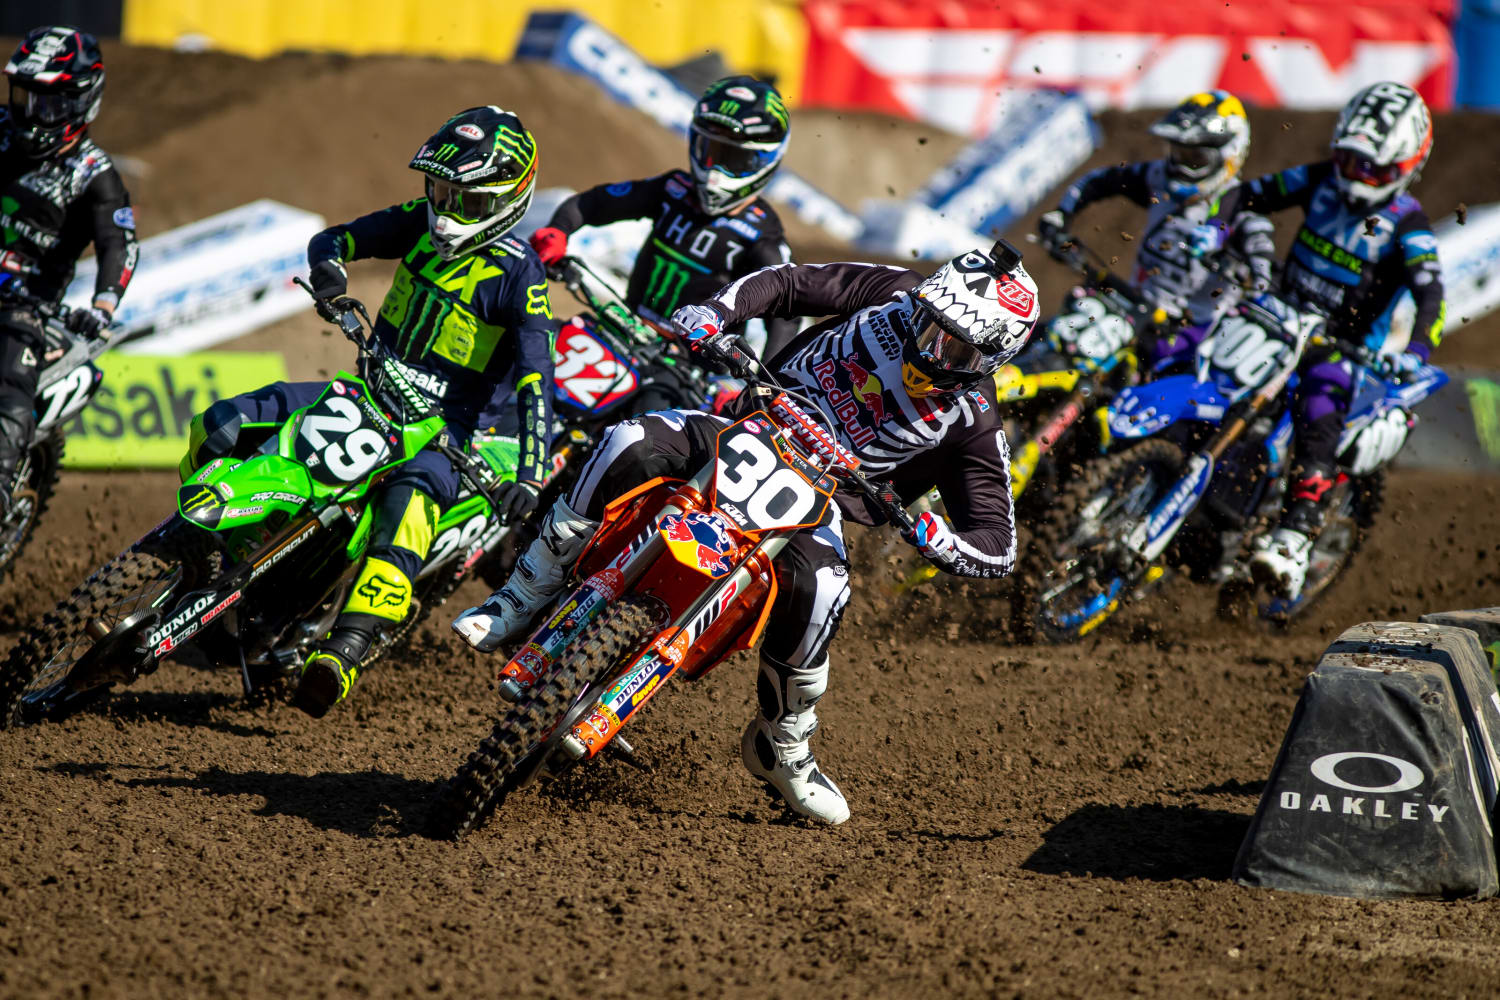 2020 Ama Supercross Schedule And Overview